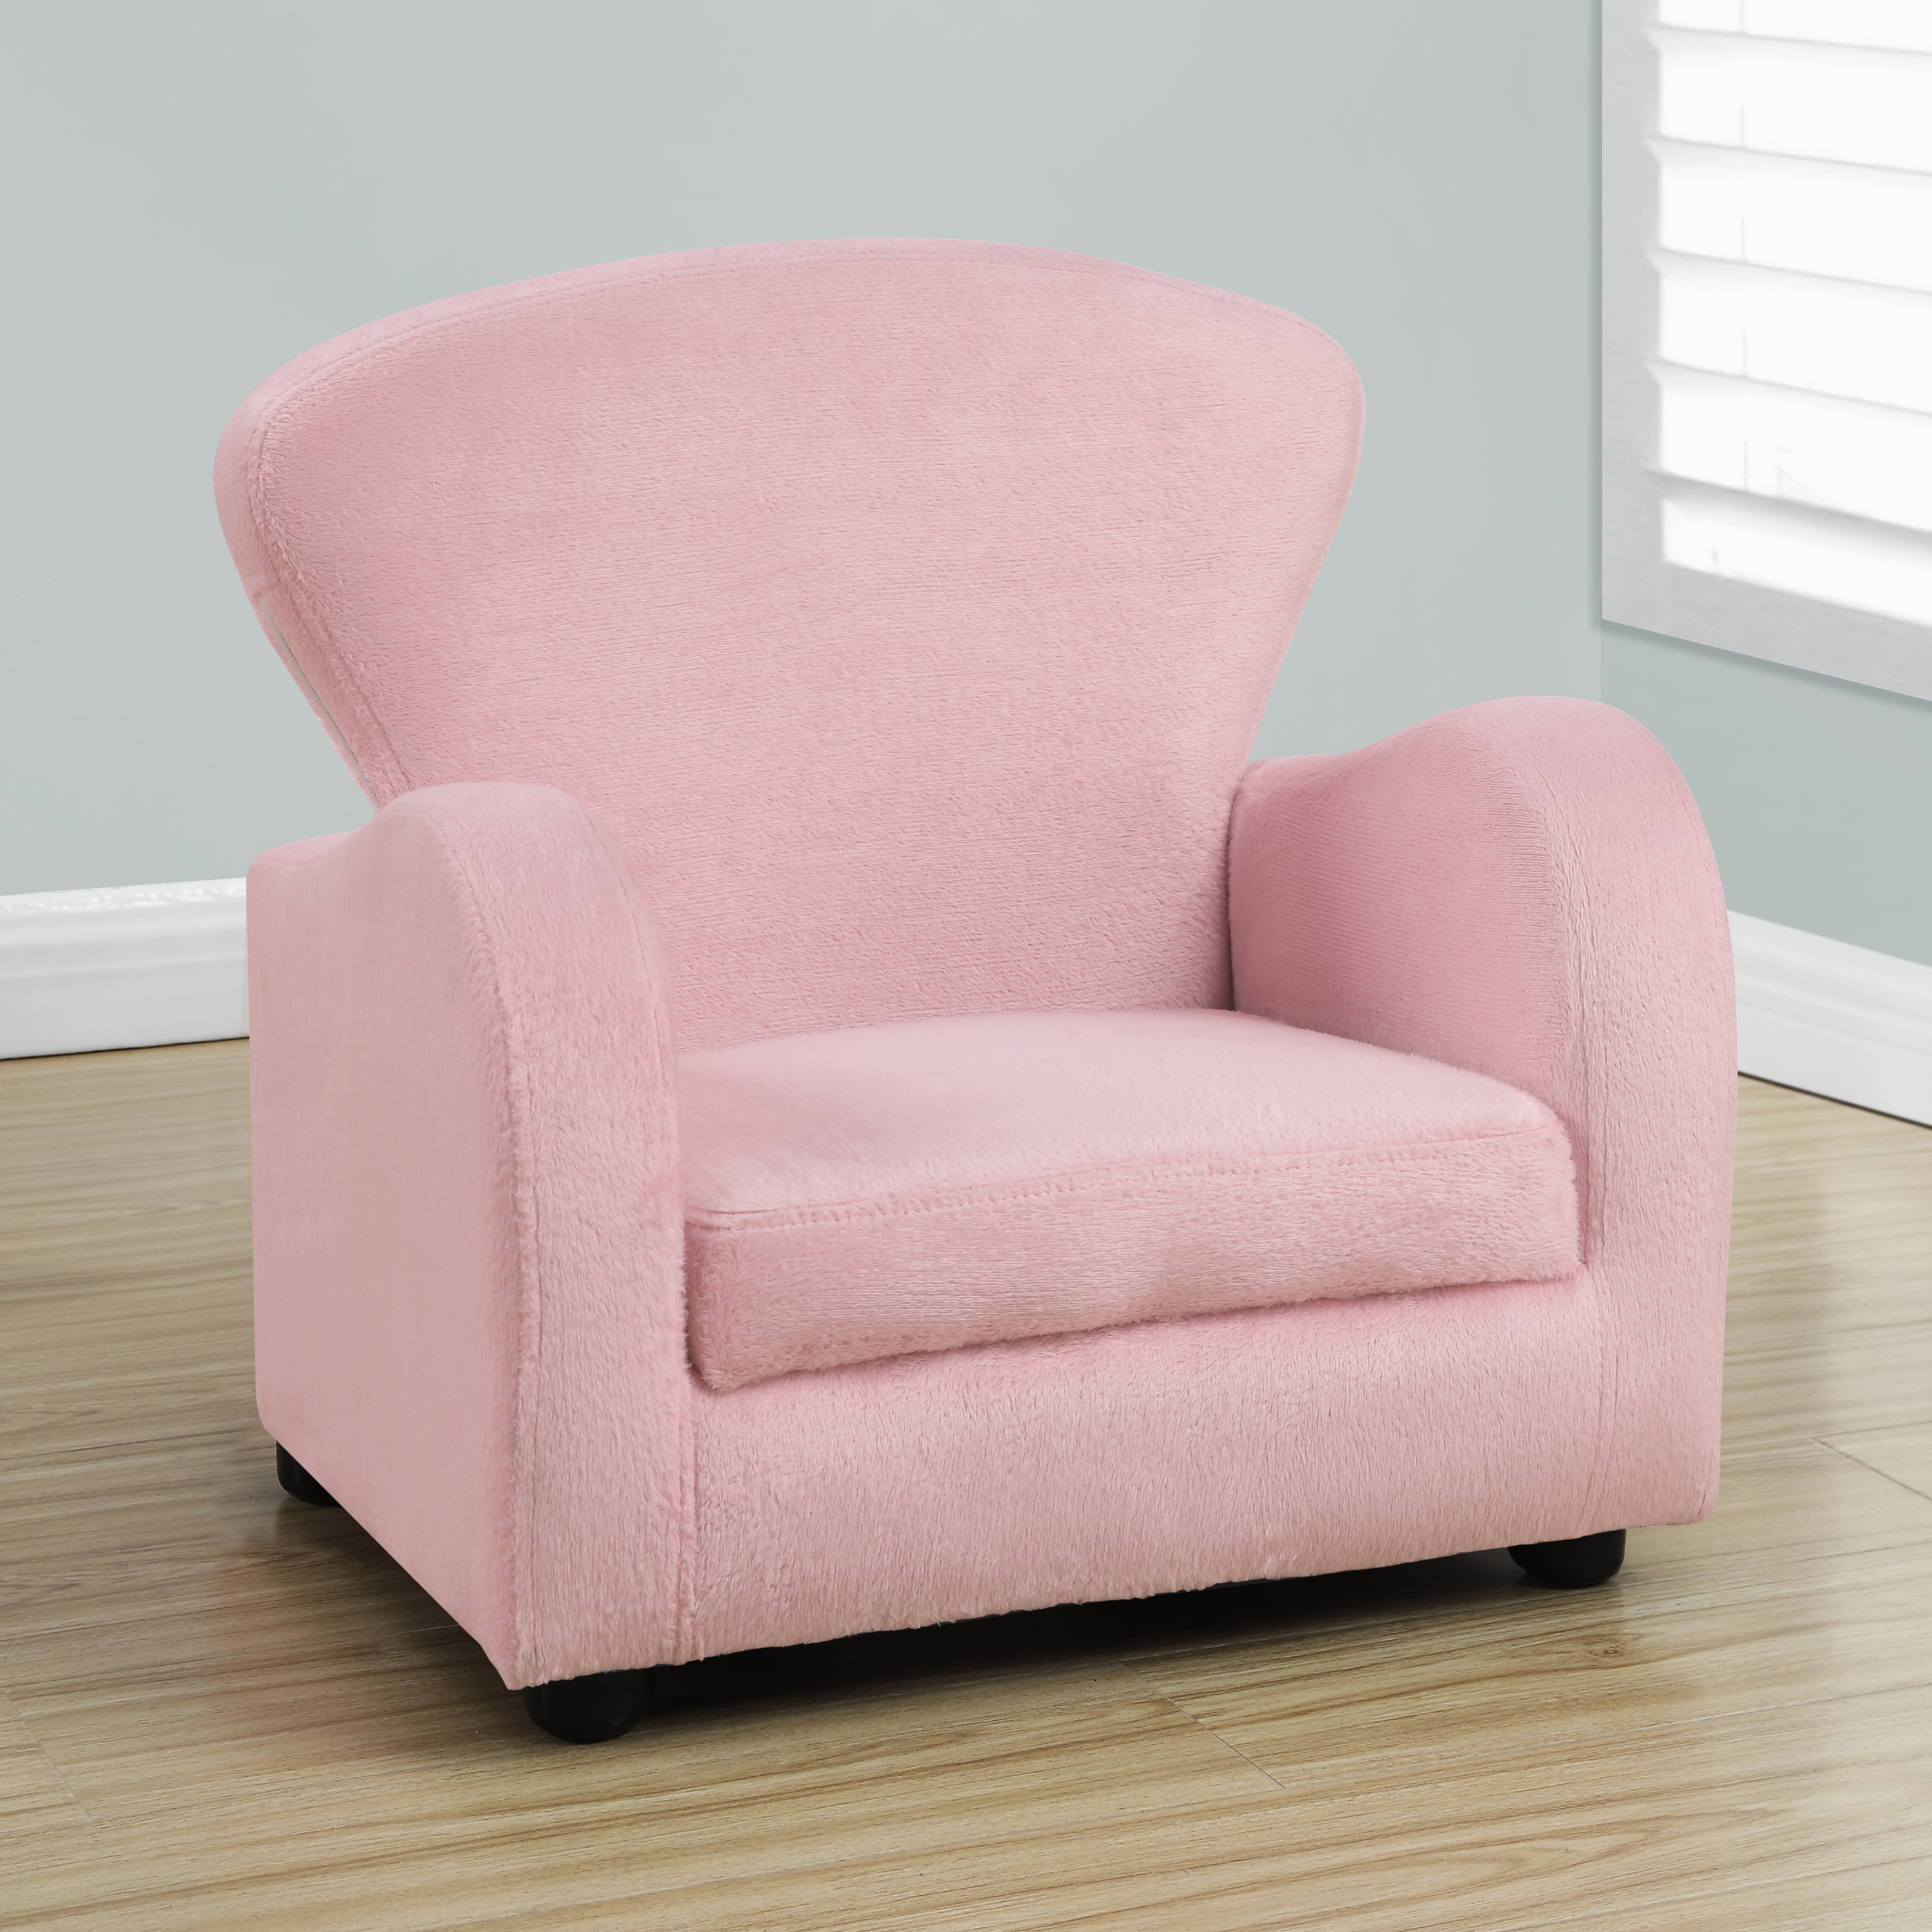 Monarch kids chair fuzzy pink kids upholstered chairs for Kids fluffy chair